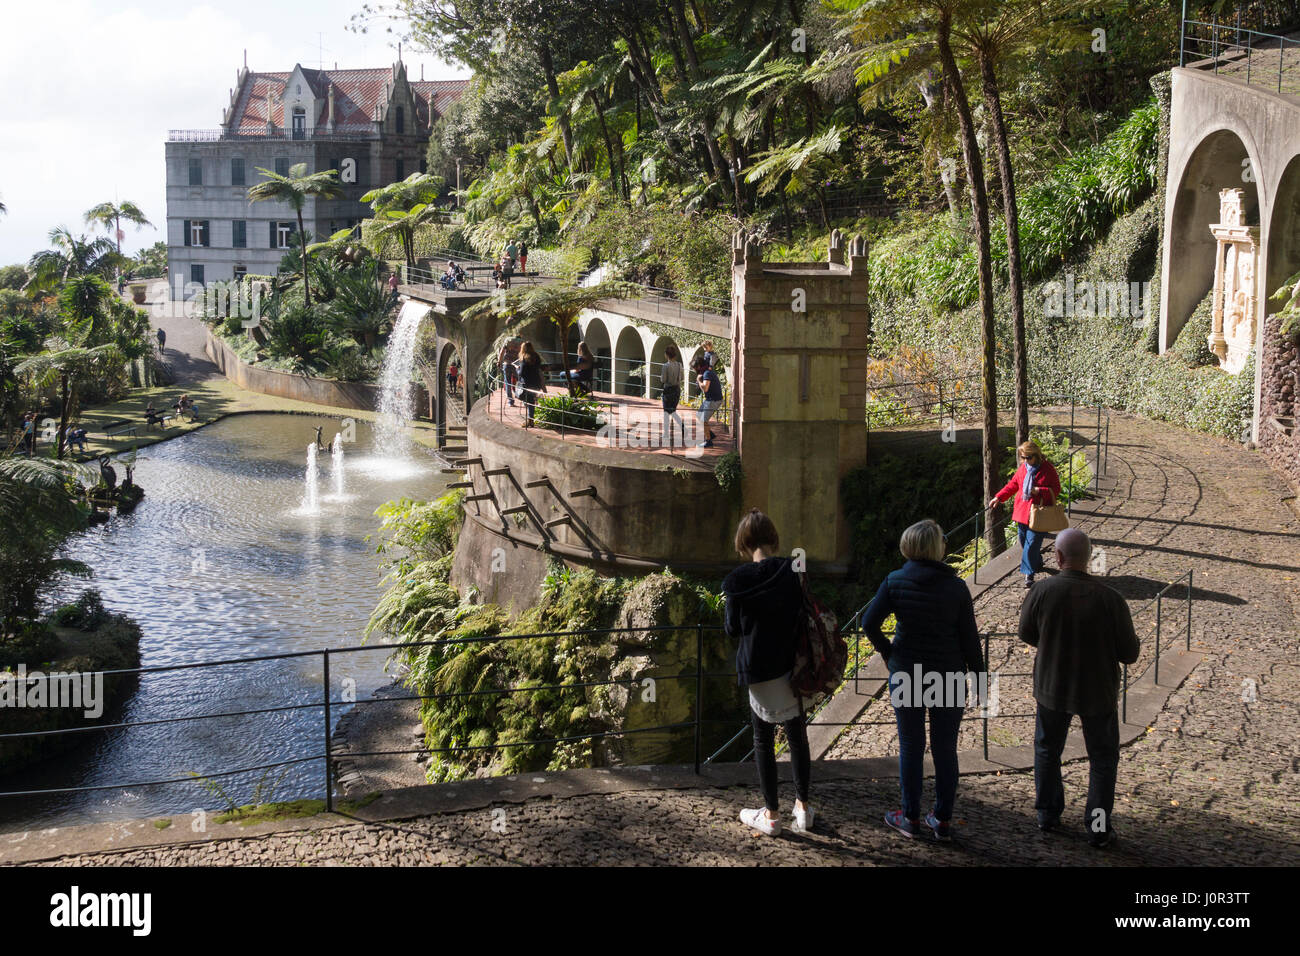 Tourists walking down towards 'Swan Lake' in Nonte Palace Tropical Garden, Funchal, Madeira - Stock Image